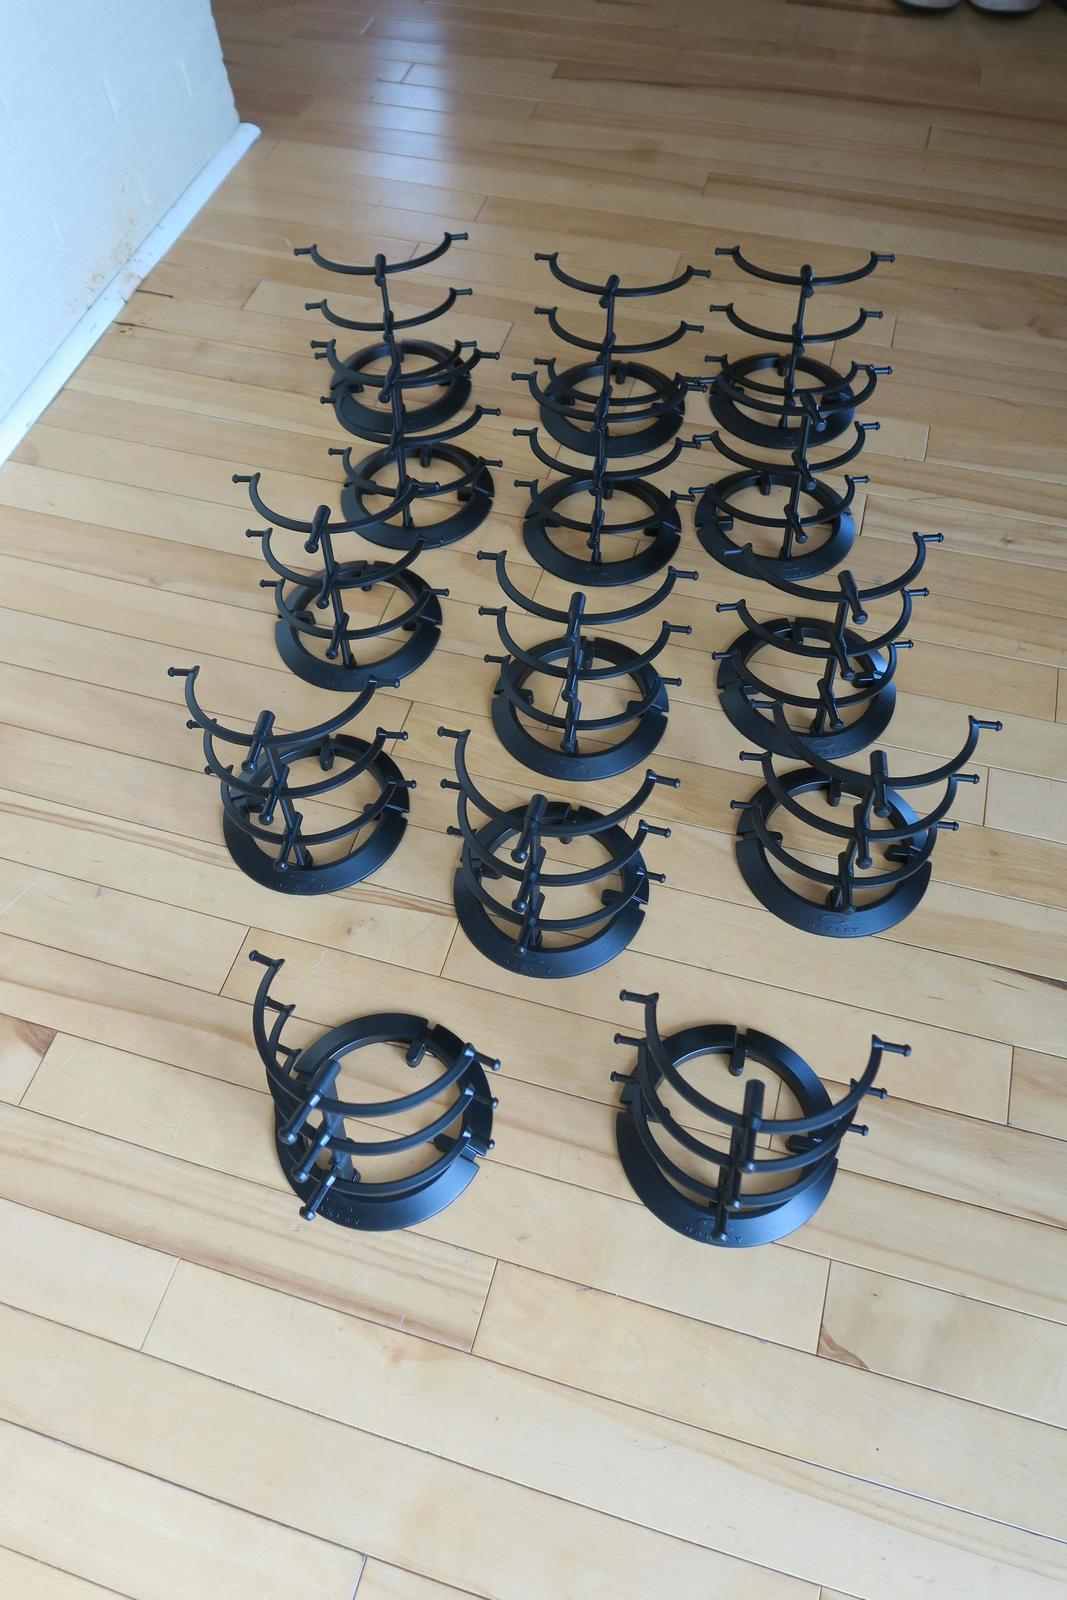 4.0 and 3.0 Plastic Risers!!! (3, 2 and 1 Tier.) - 13SlLXx.jpg